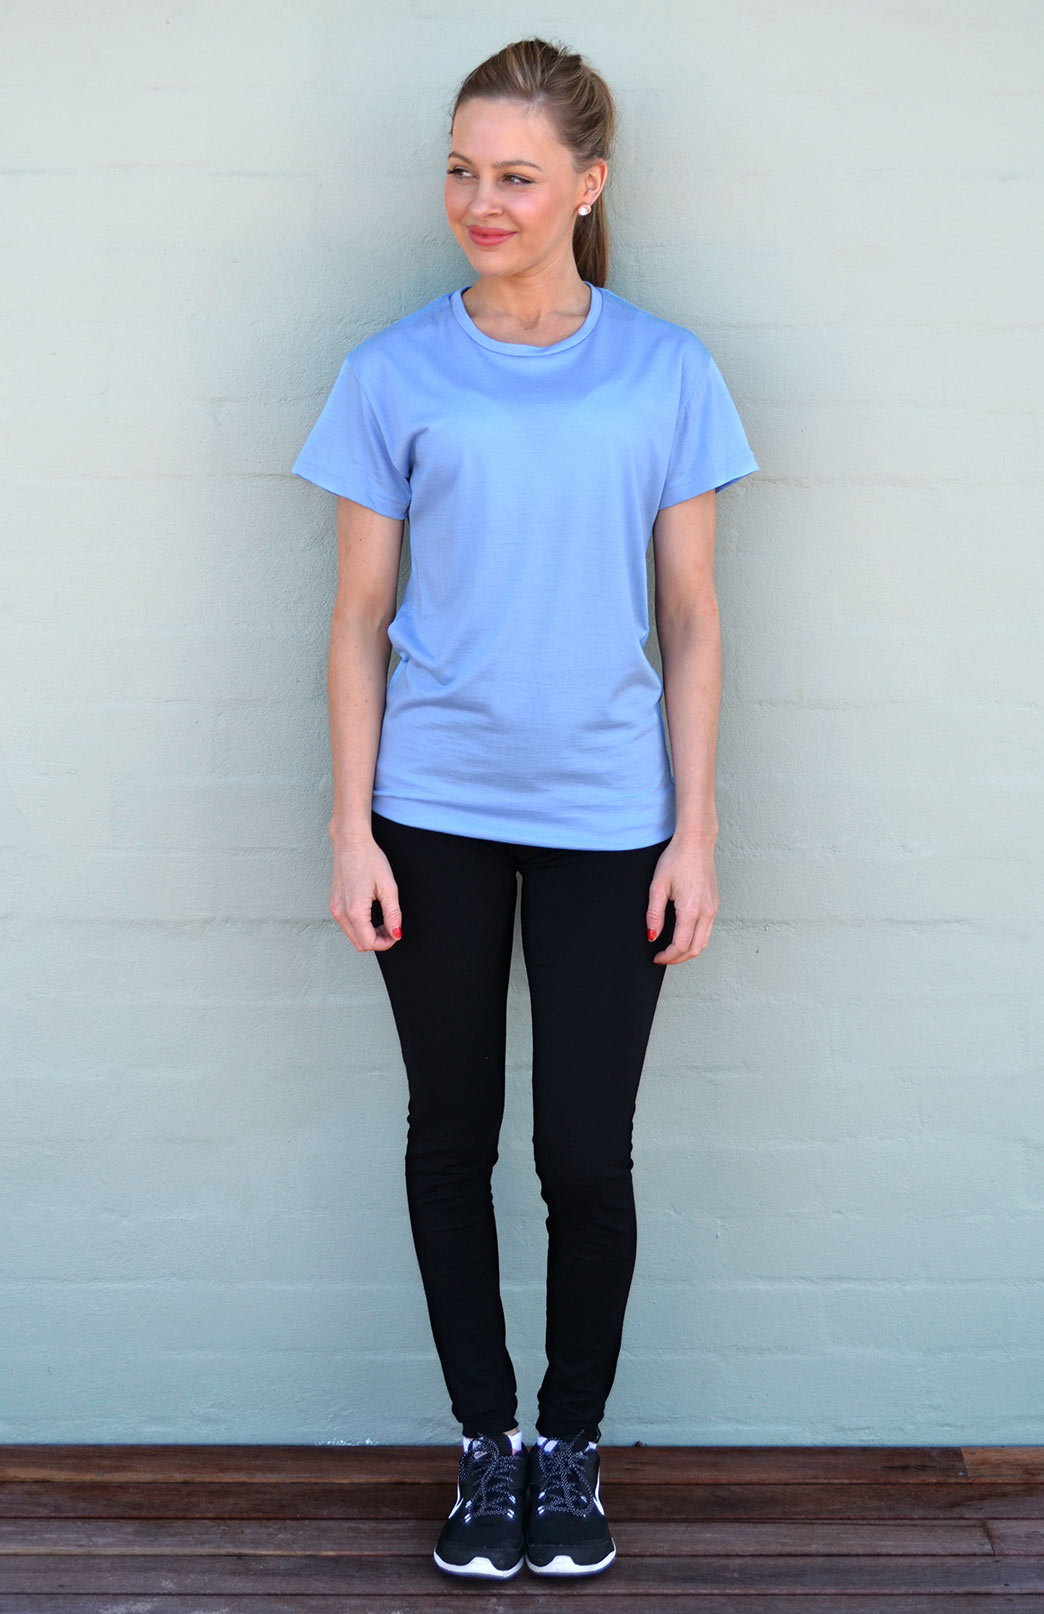 Short Sleeved Crew Neck T-Shirt - Ultralight (170g) - Women's Light Blue Wool Short Sleeved Crew Neck T-Shirt - Smitten Merino Tasmania Australia